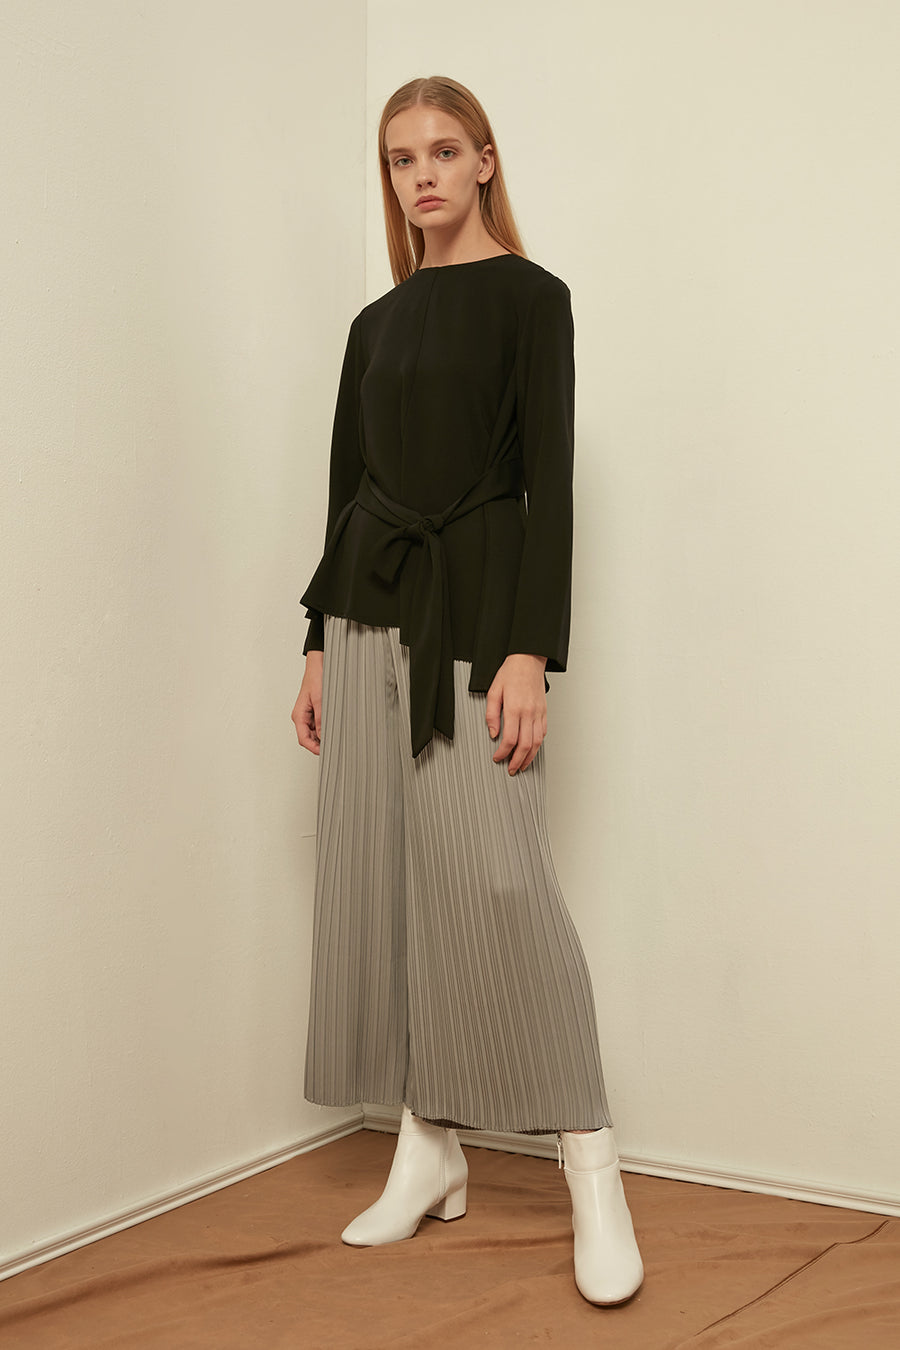 Chiffon top with waist tie - Zelle Studio